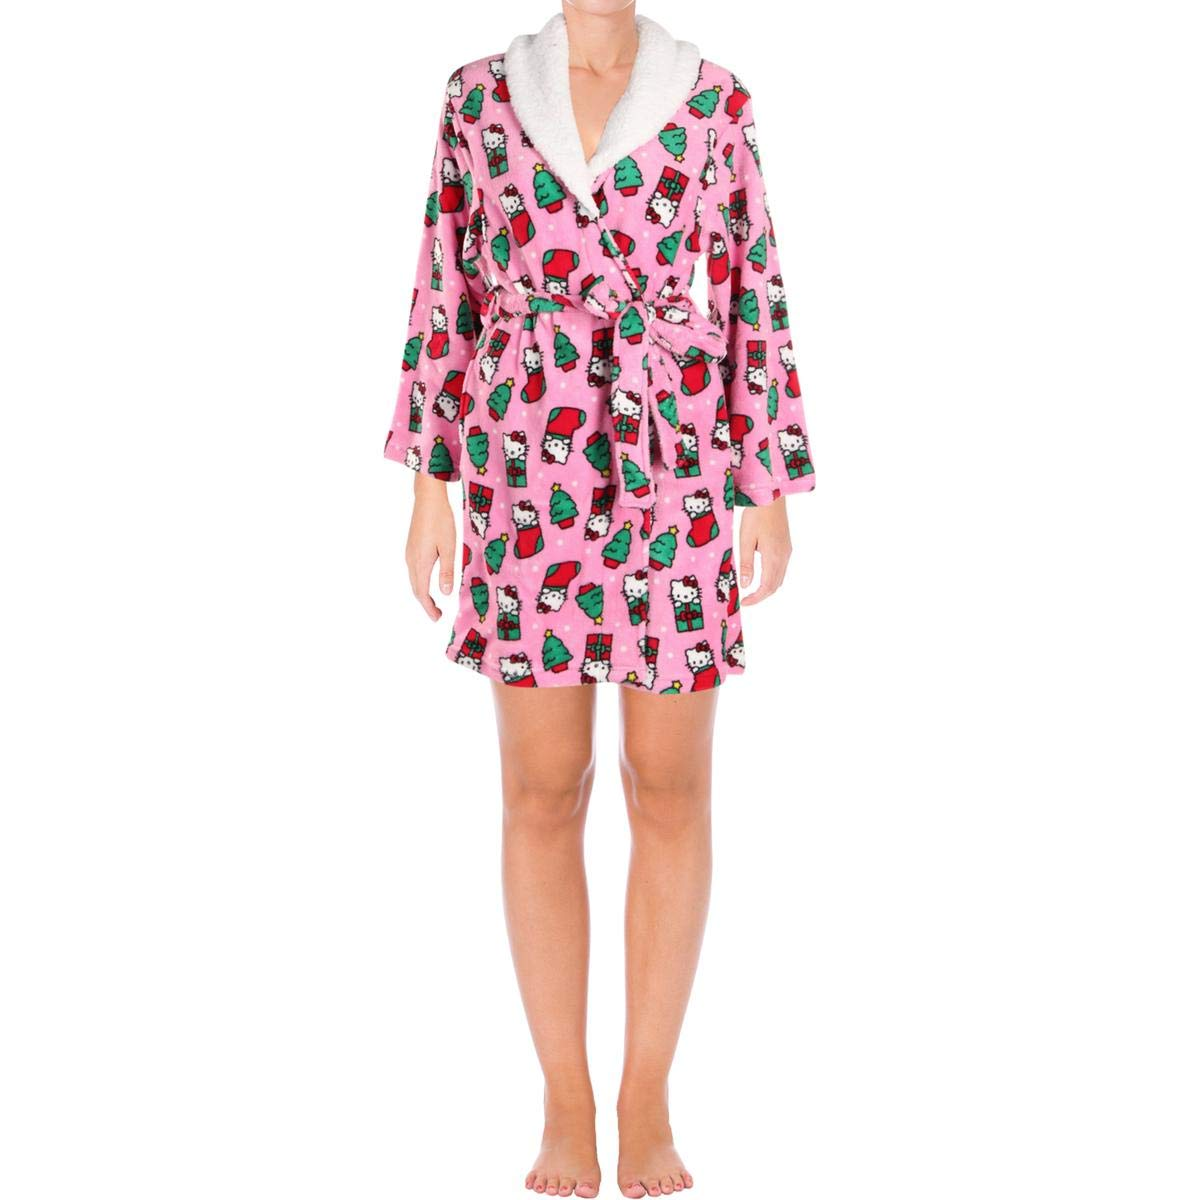 a79516cd5 Hello Kitty Women's Printed Plush Robe at Amazon Women's Clothing store: